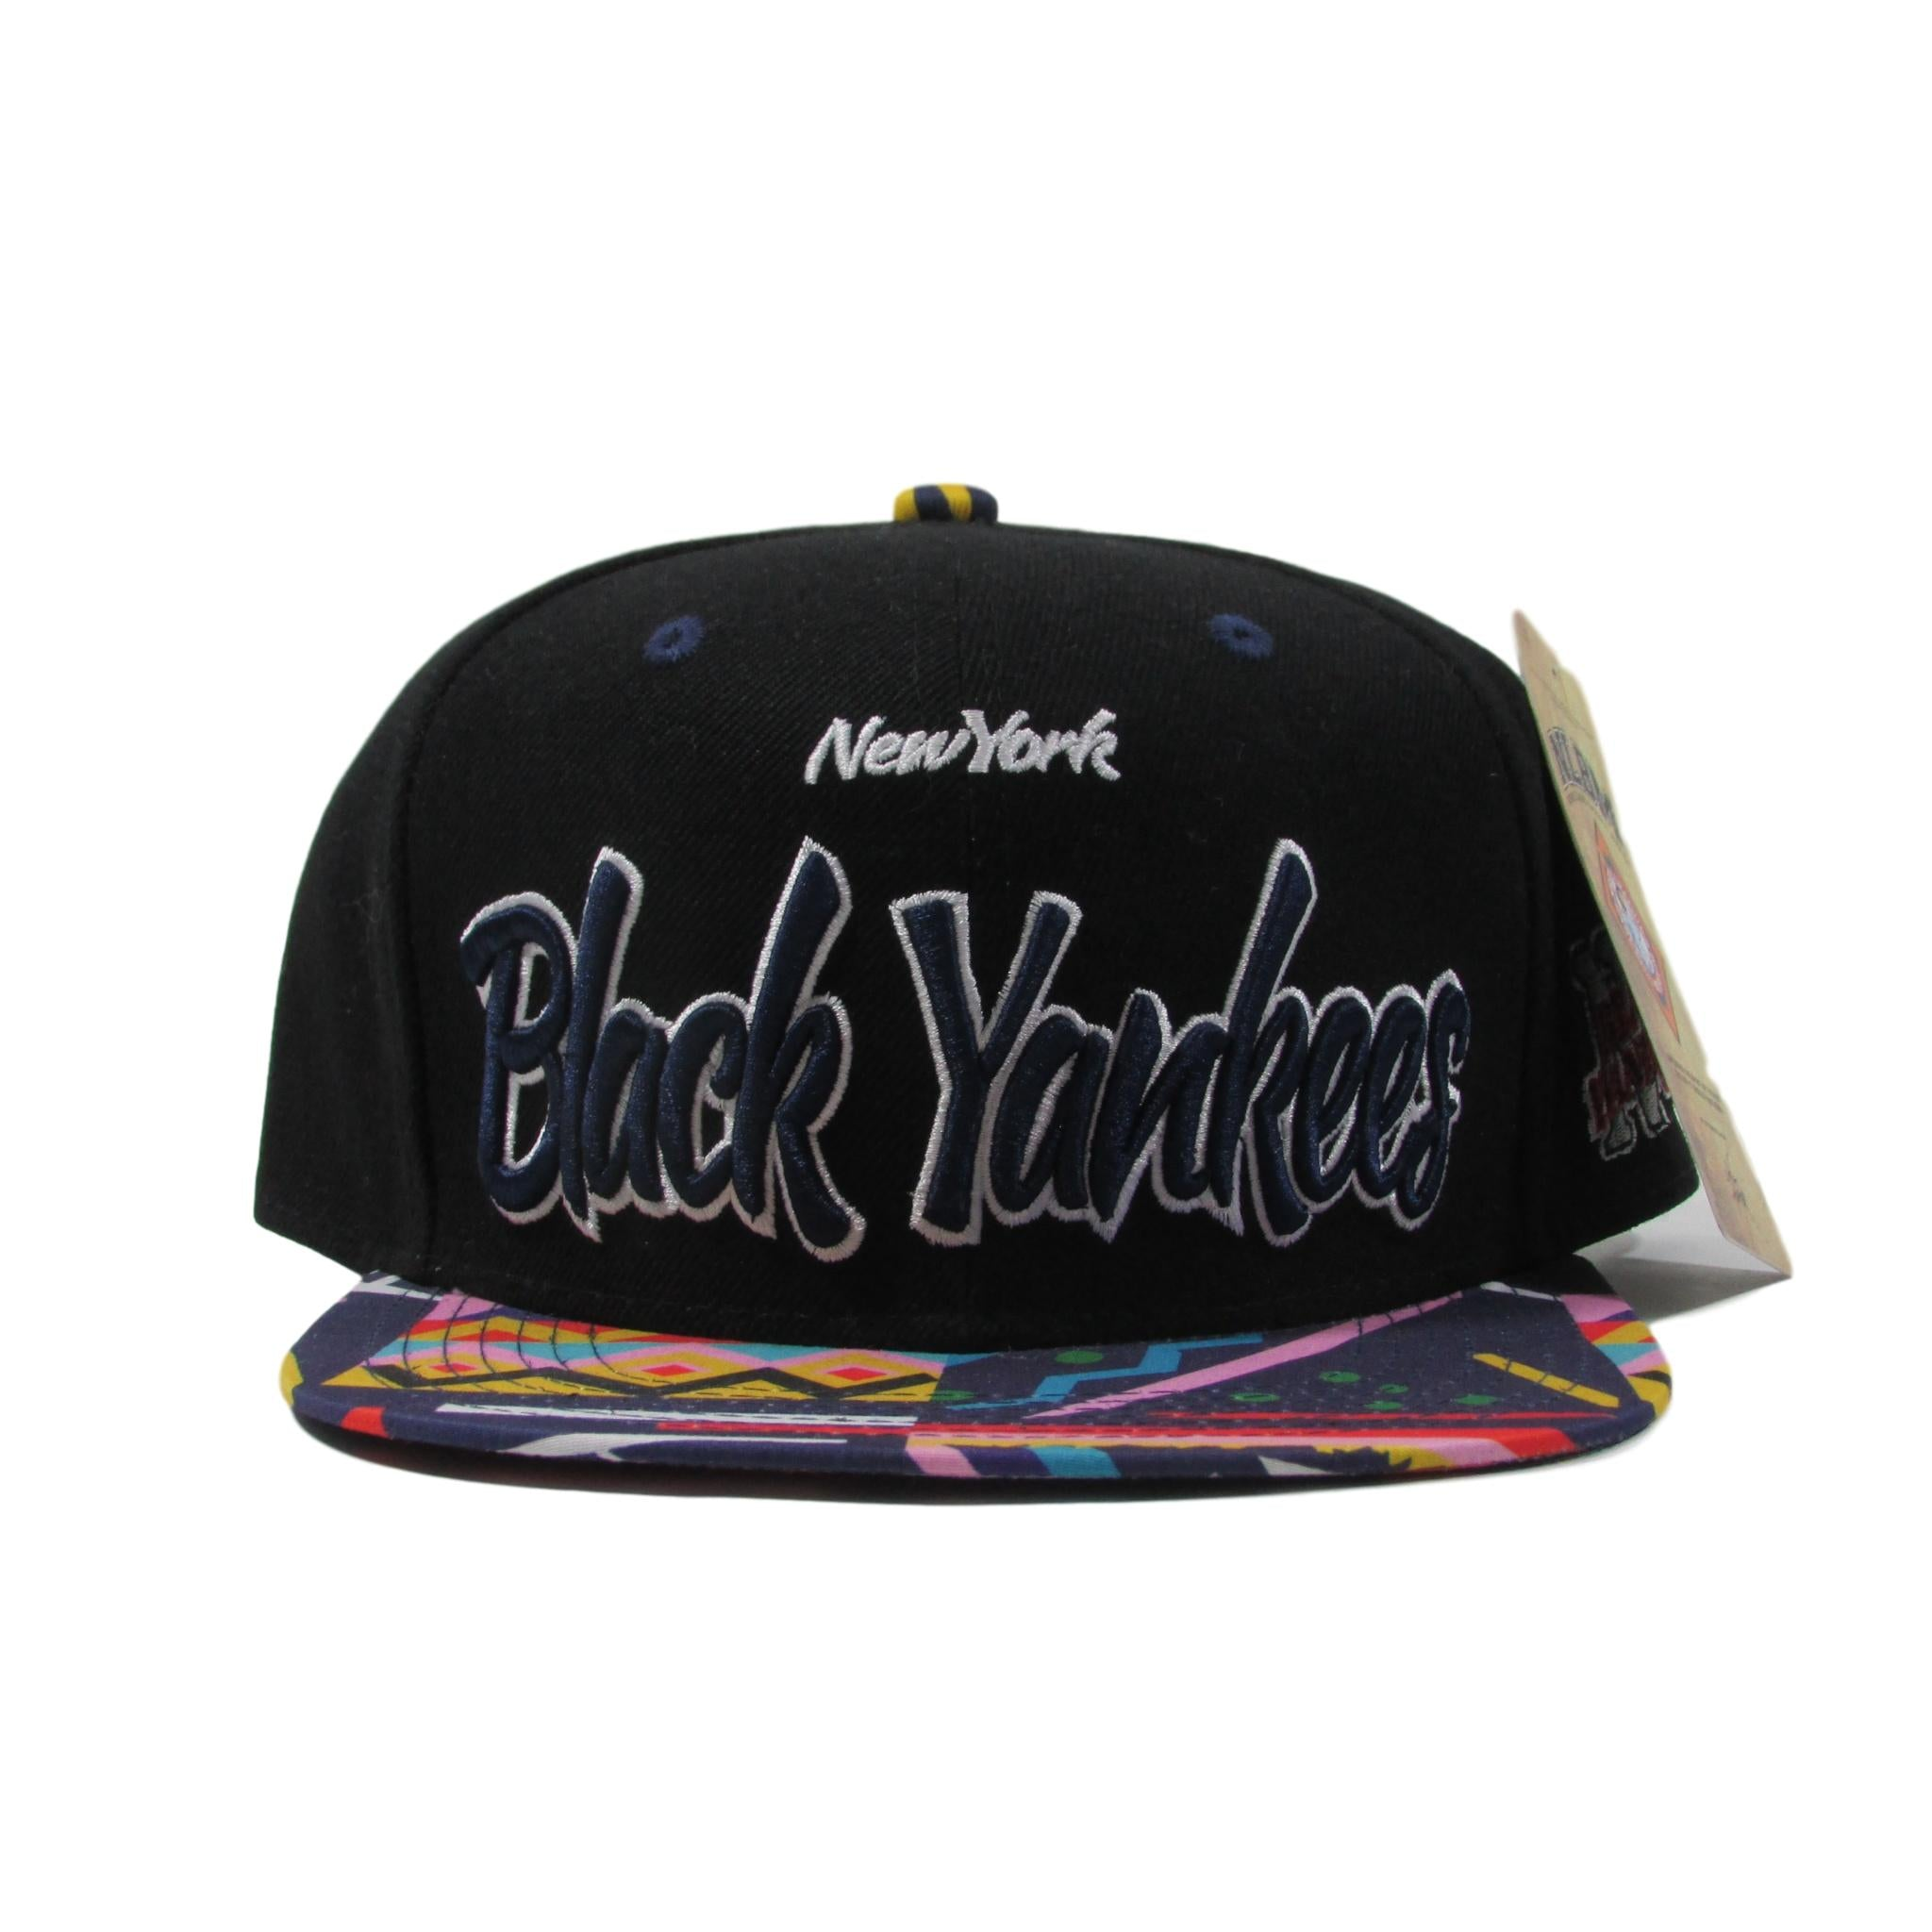 a5e3c902145 related products. Last Kings Black Pharaoh Velour Under-brim Snapback Hat  ...